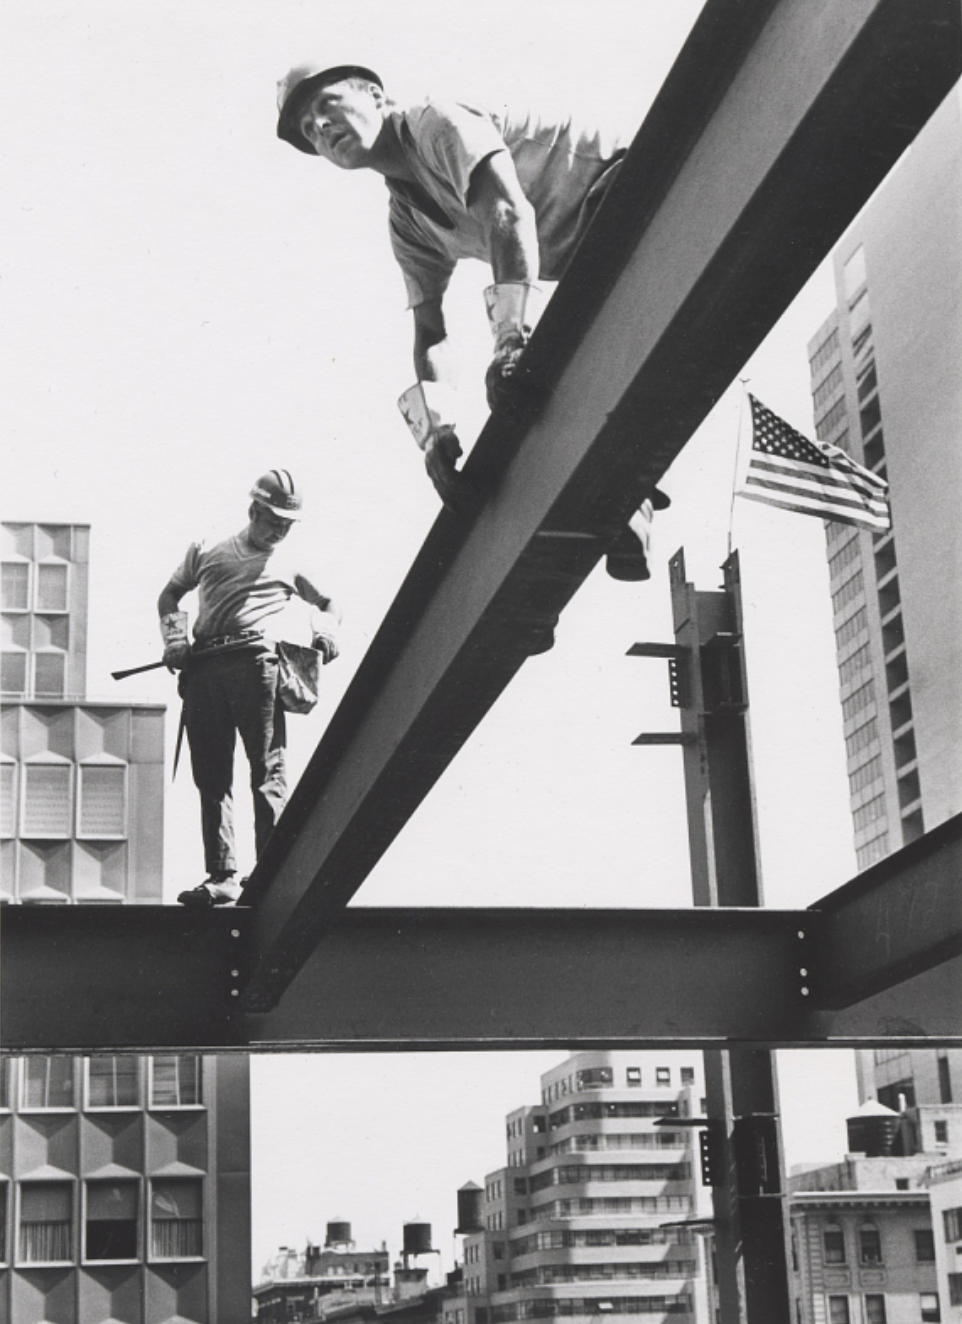 Mohawk Ironworkers Jay Jacobs and Sparky Rice Walking Iron on Park Avenue  ca. 1970 via the Smithsonian